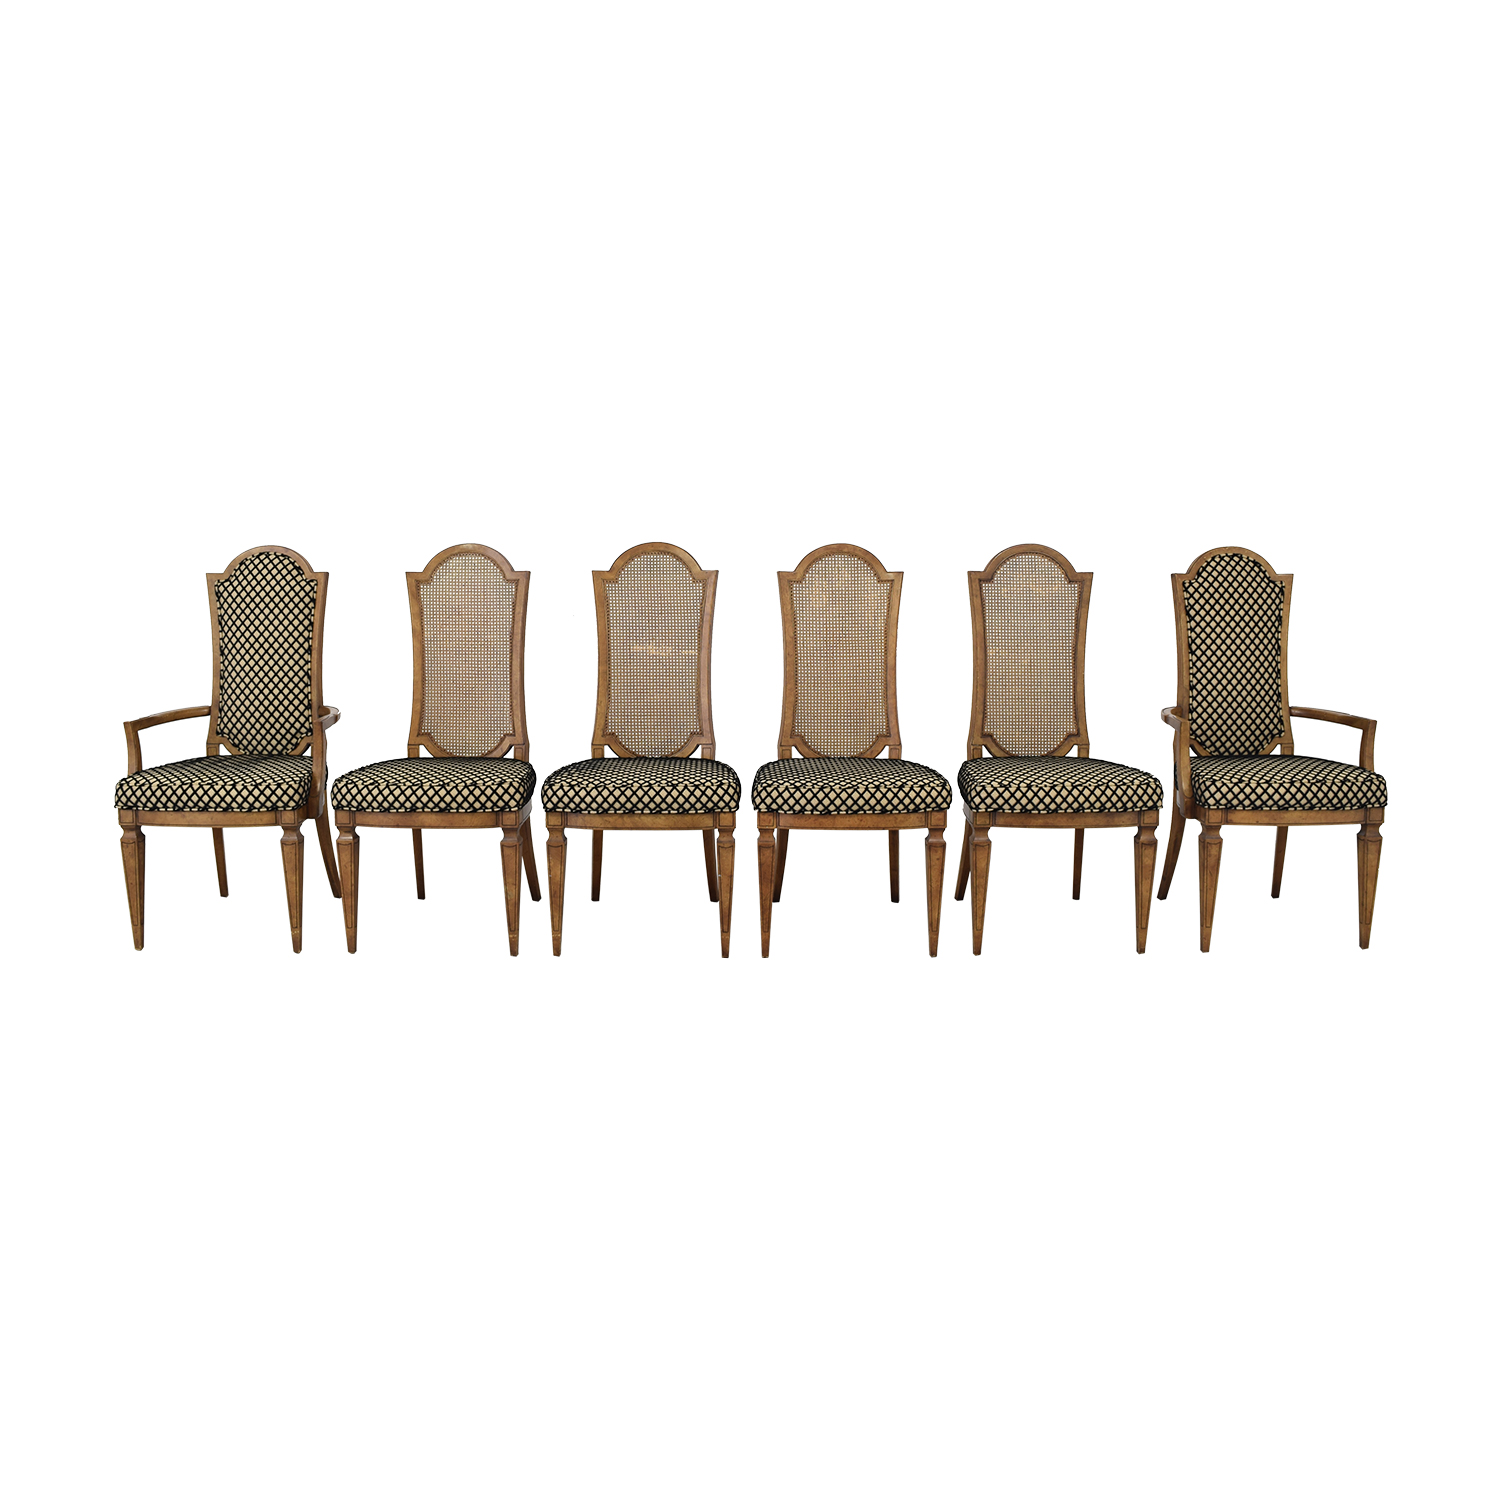 buy Mastercraft Furniture Patterned Dining Chairs Mastercraft Furniture